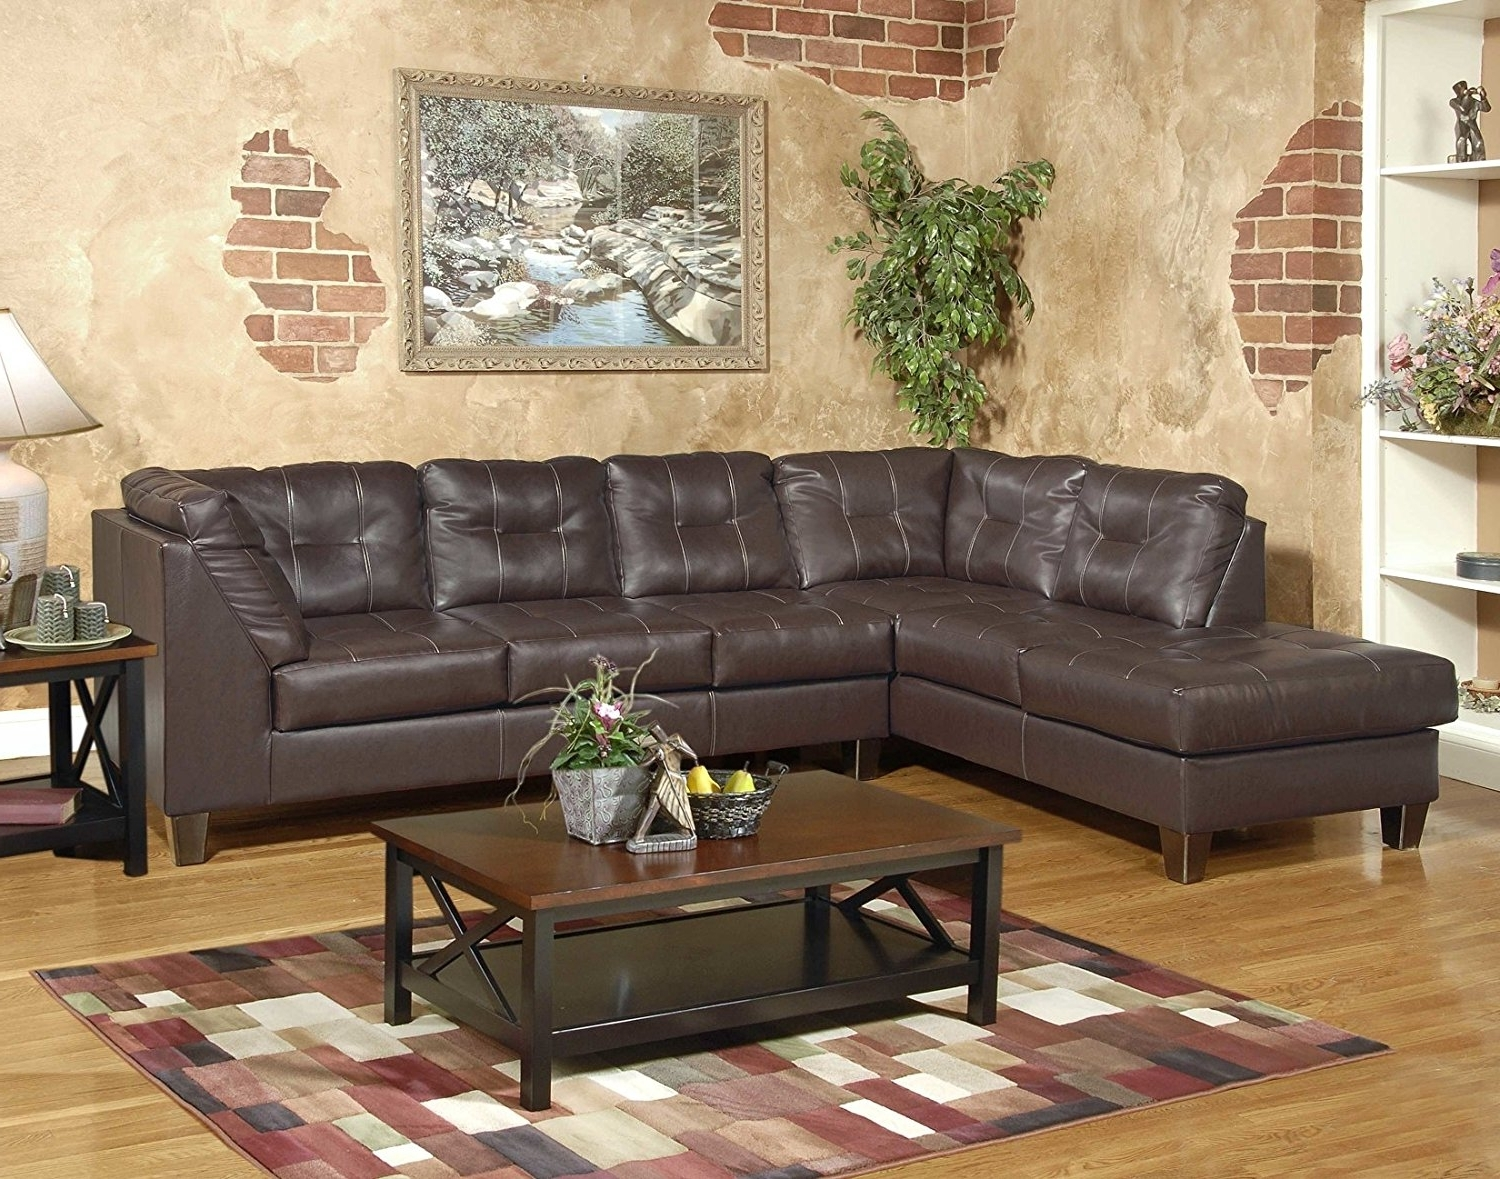 Fashionable Amazon: Roundhill Furniture Marinio Chocolate Faux Leather With Sectional Sofas In Greensboro Nc (View 6 of 15)